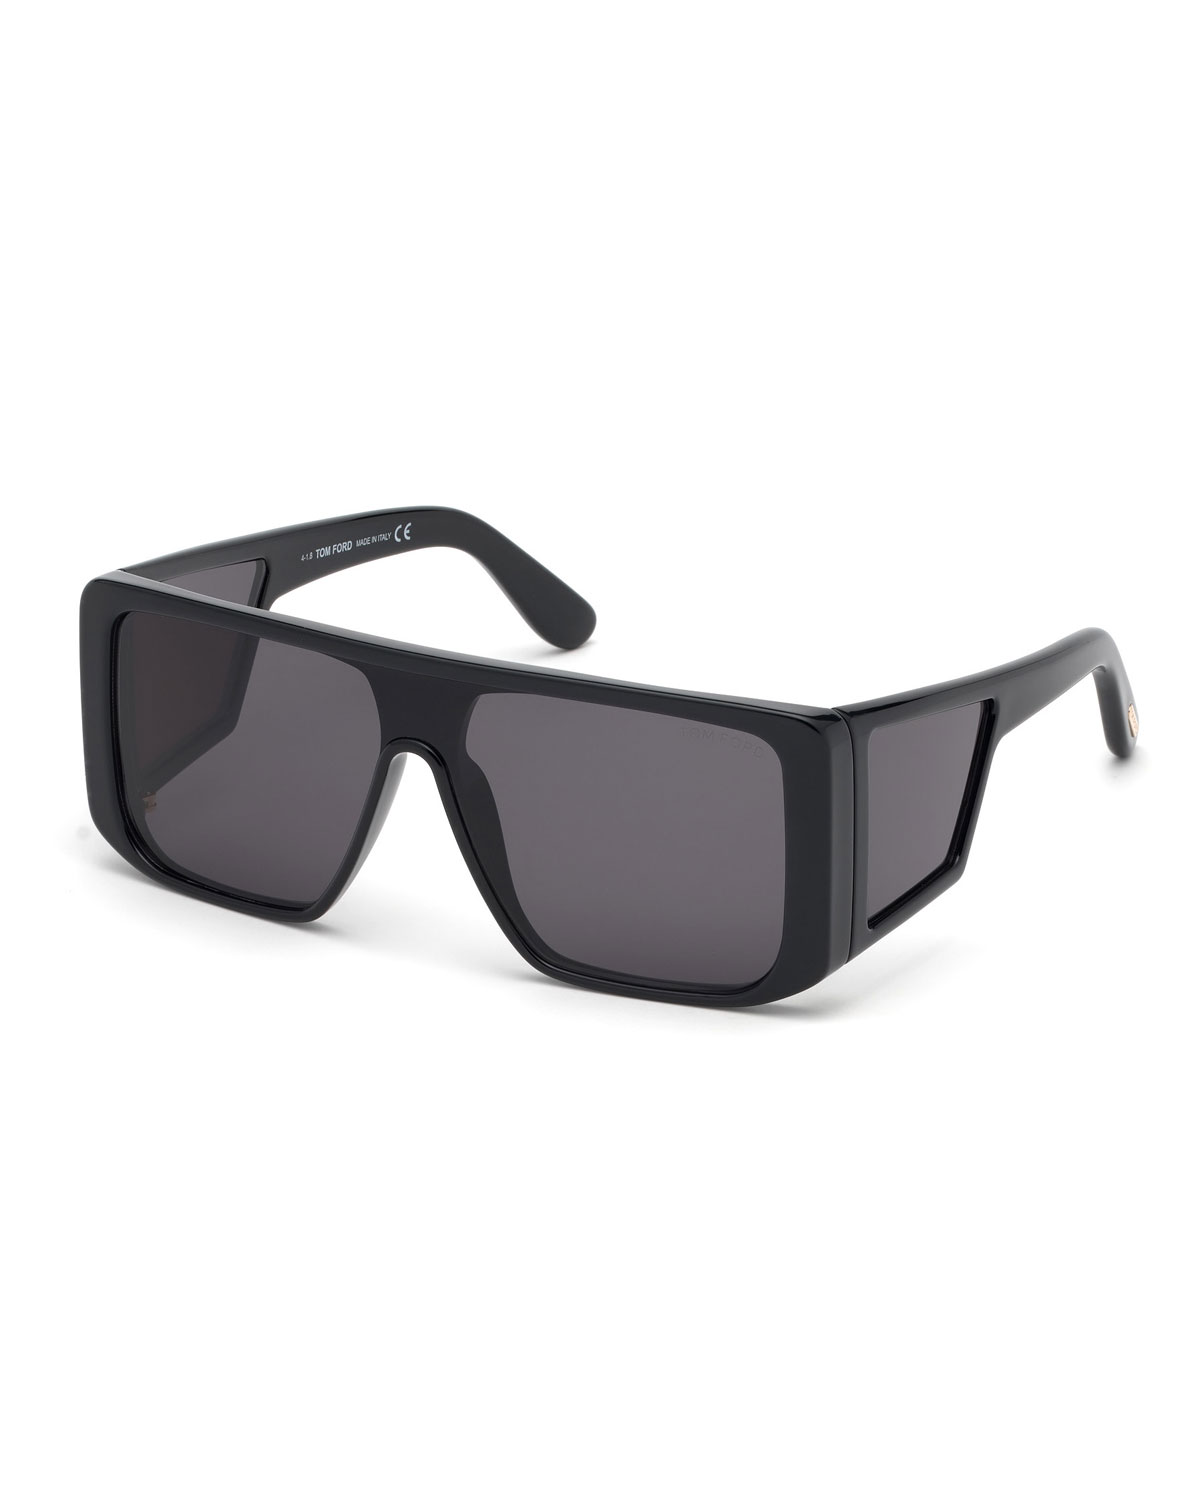 TOM FORD Men's Atticus Wide Plastic Sunglasses